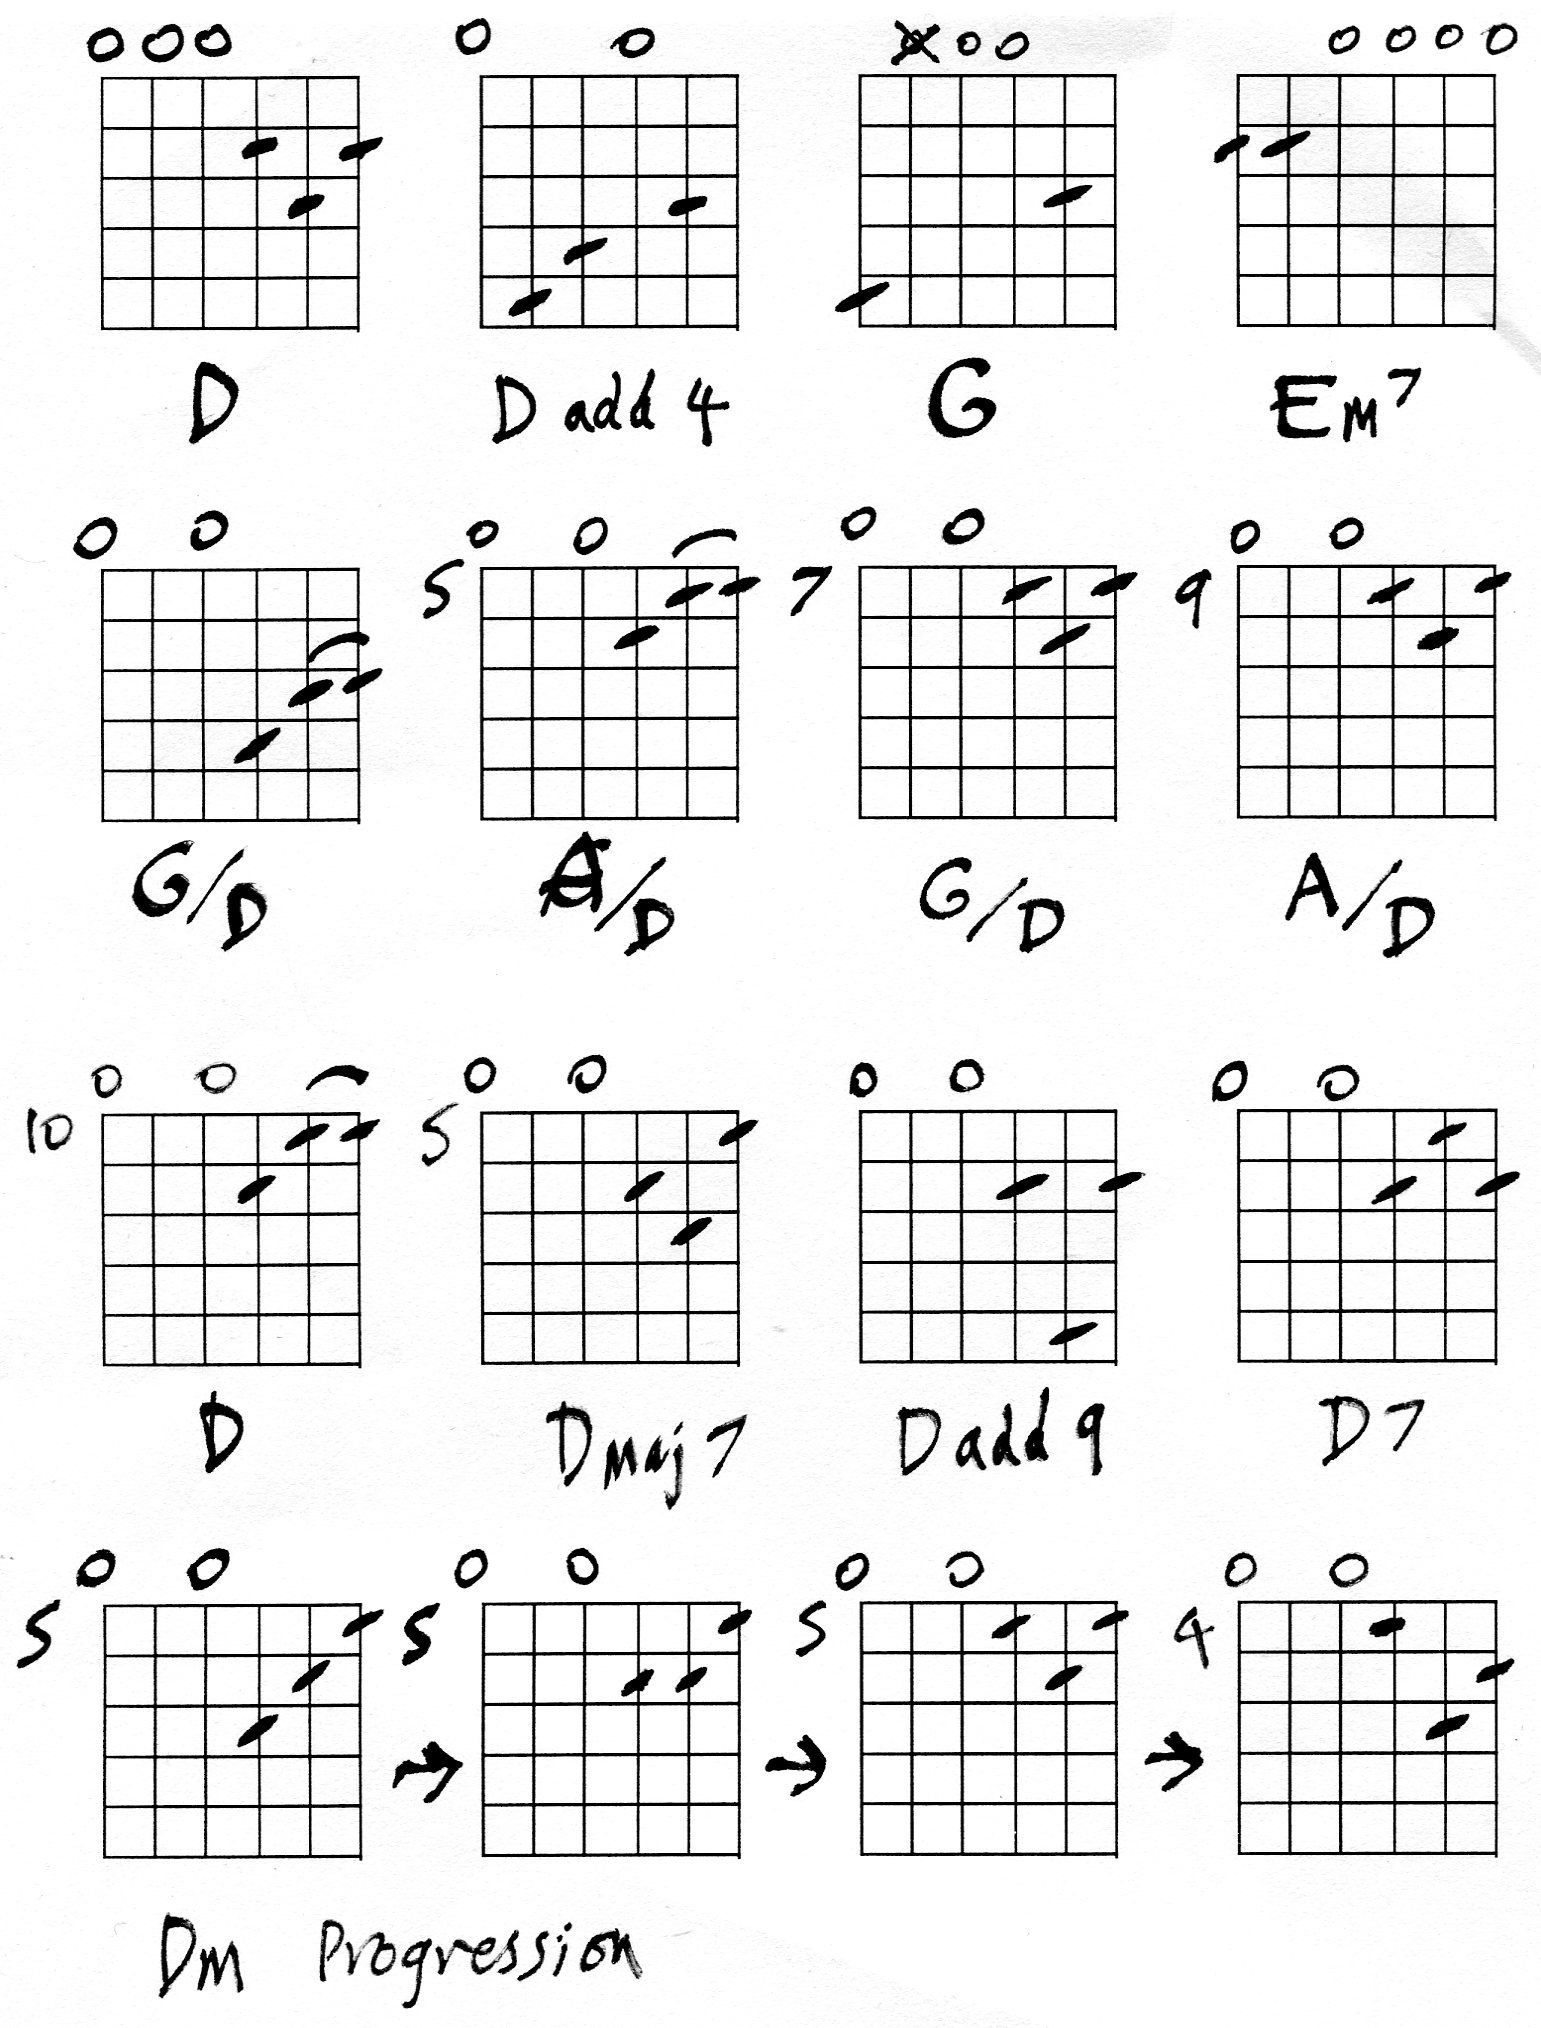 Guitar chords in drop d guitar chords guitars and guitar chord guitar chords in drop d hexwebz Image collections